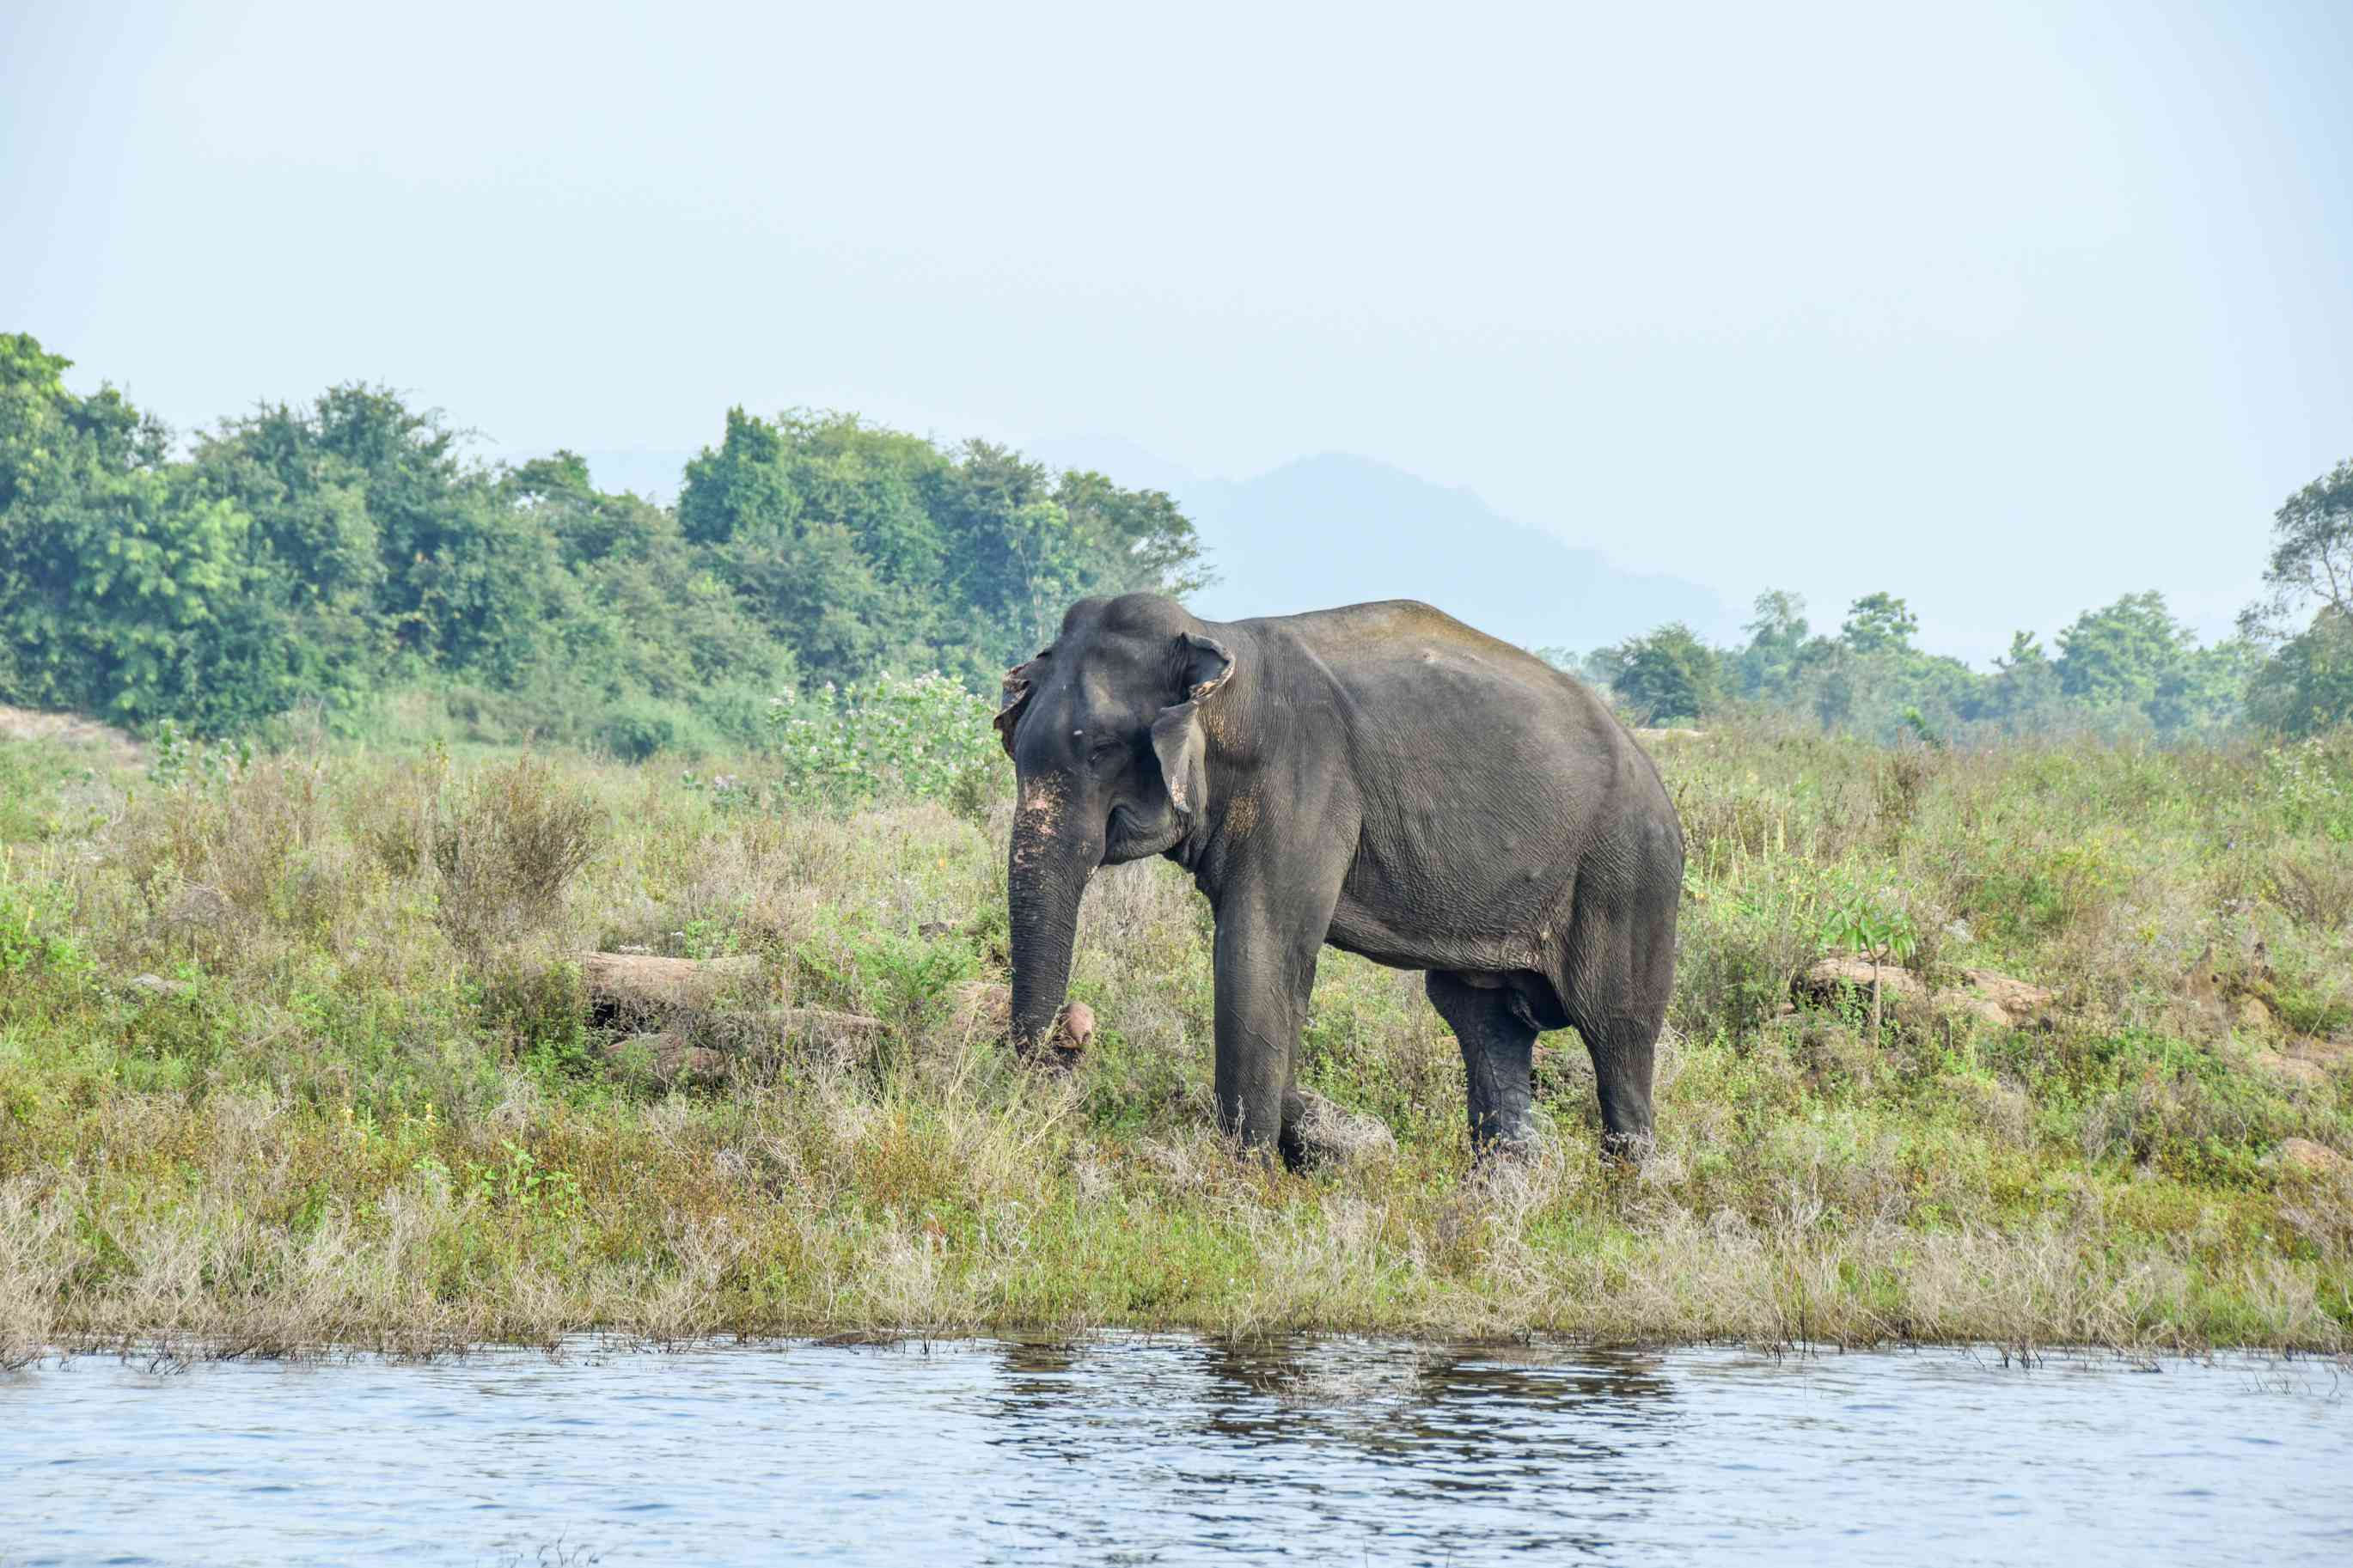 An elephant drinking water